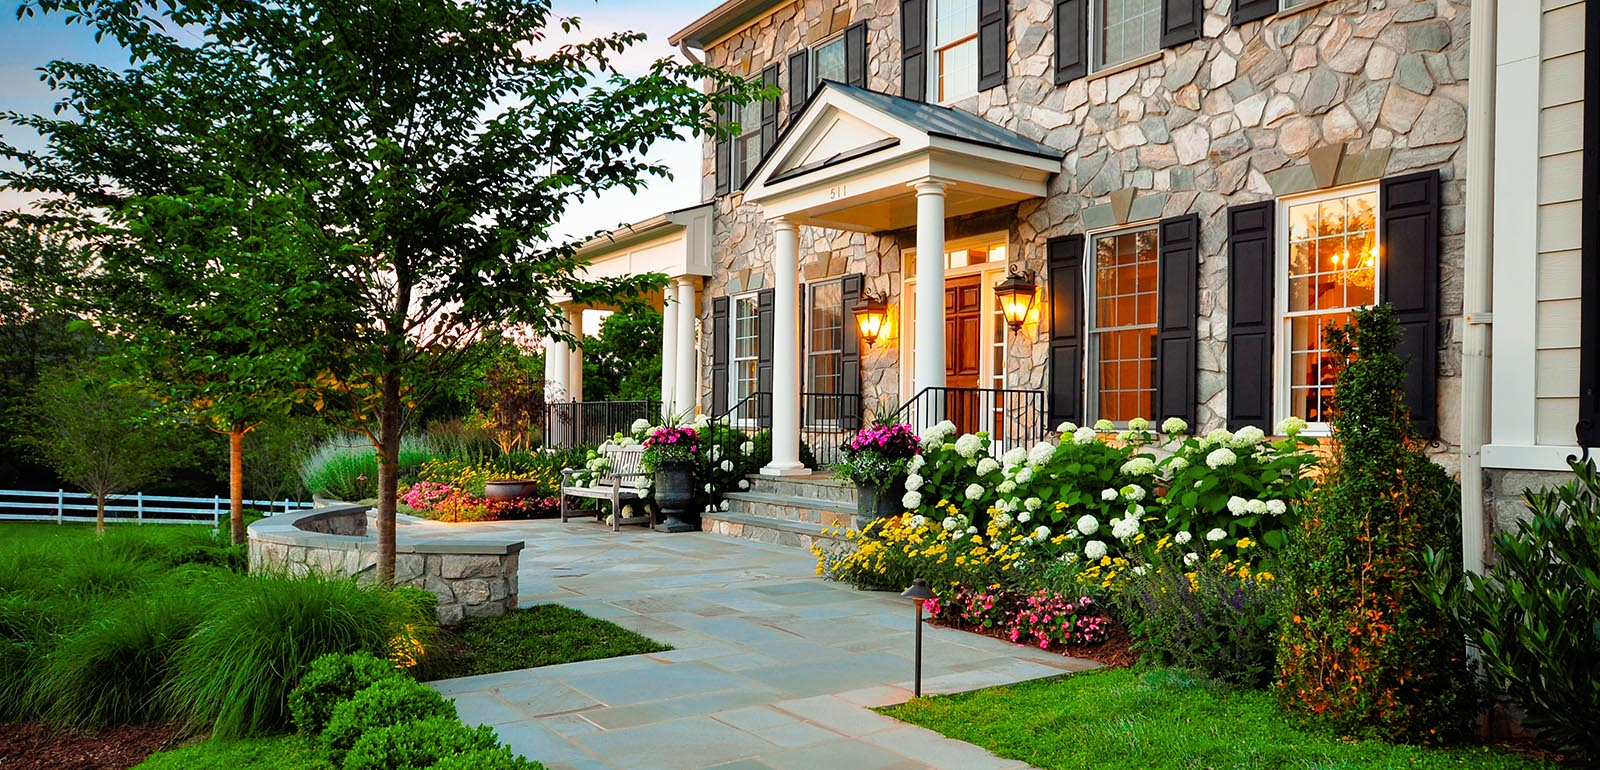 Choose Lovely Flowers and Green Plantations facing Stone Pathway and Grass Space for Front Yard Ideas